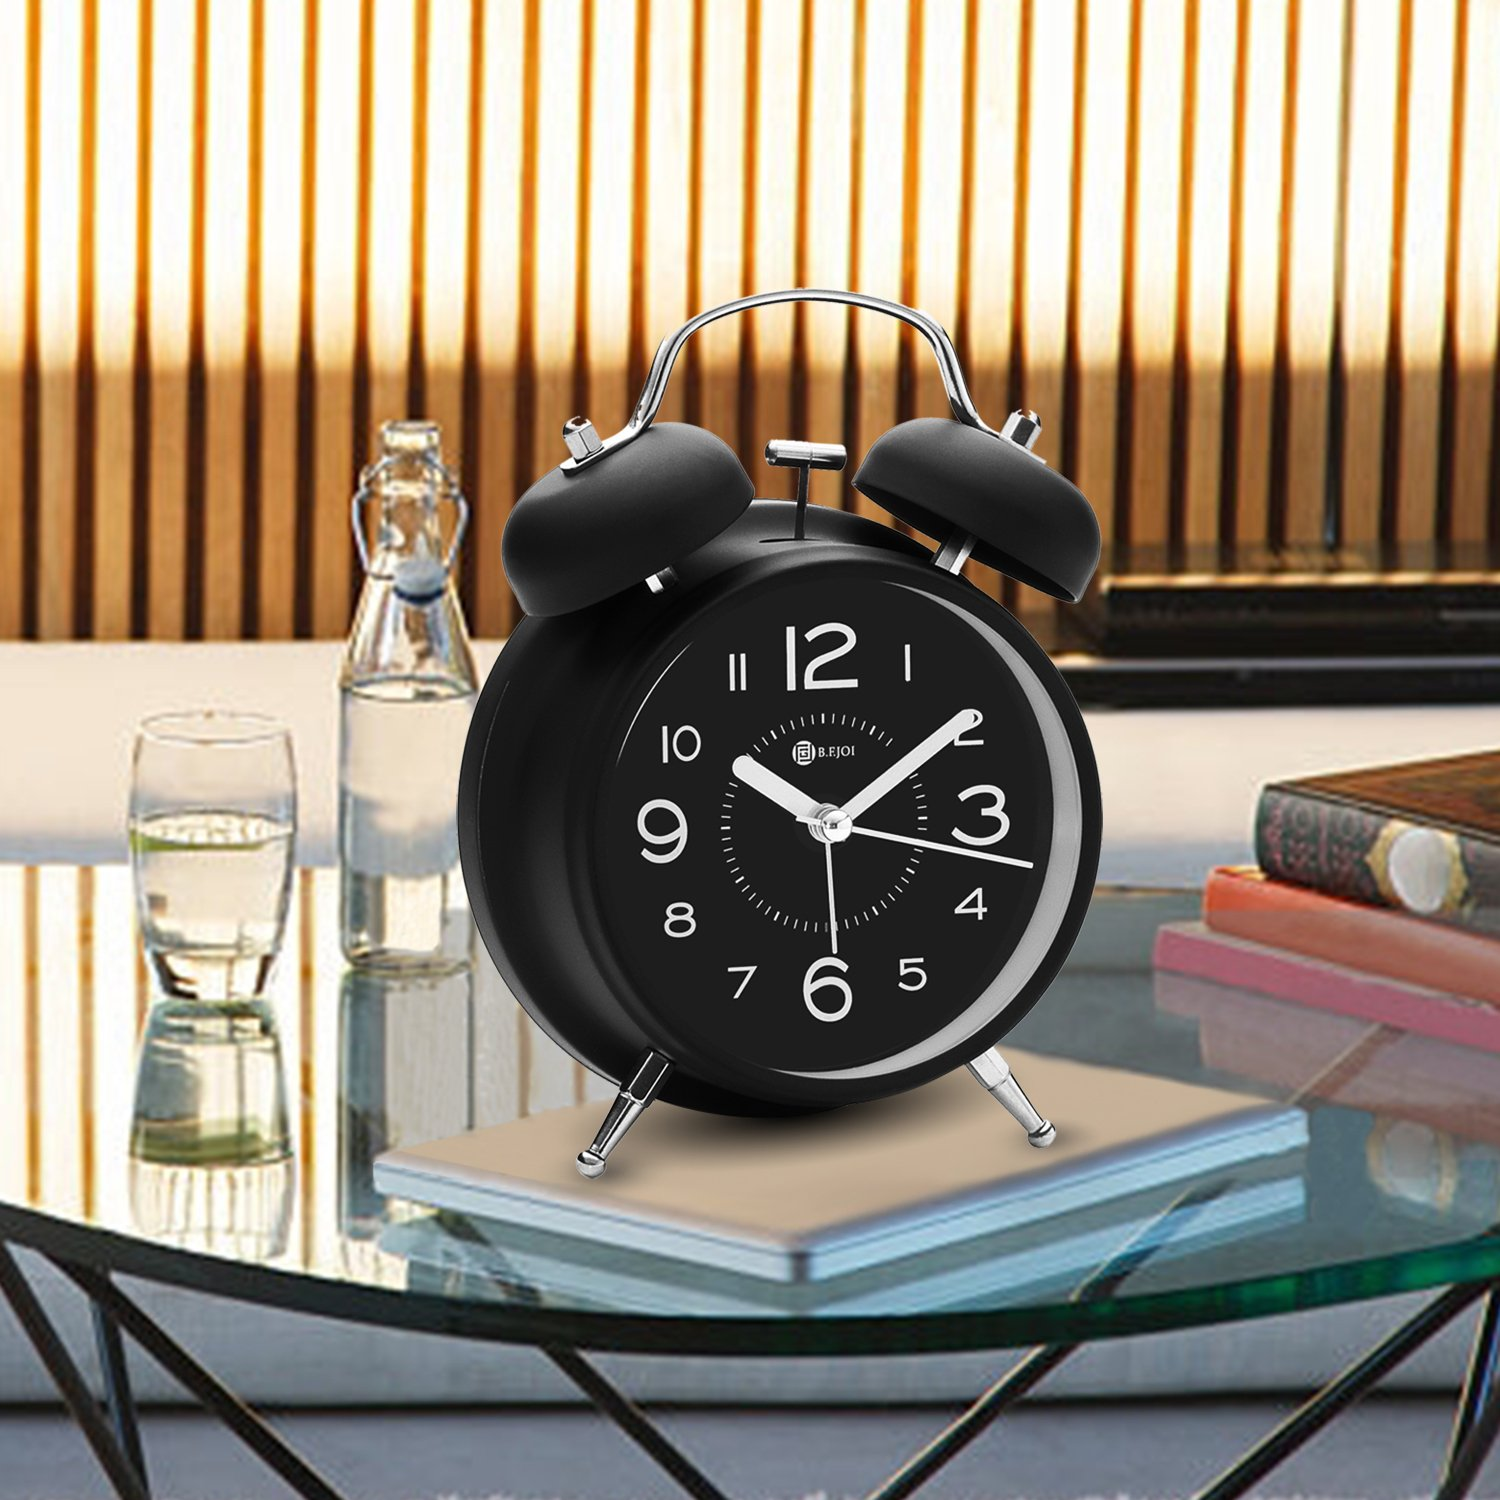 4'' Twin Bell Alarm Clock with Metal Dial, Nightlight, No Ticking Battery Operated Loud Alarm Clock for Bedroom (Black) by B.F.JOI (Image #6)